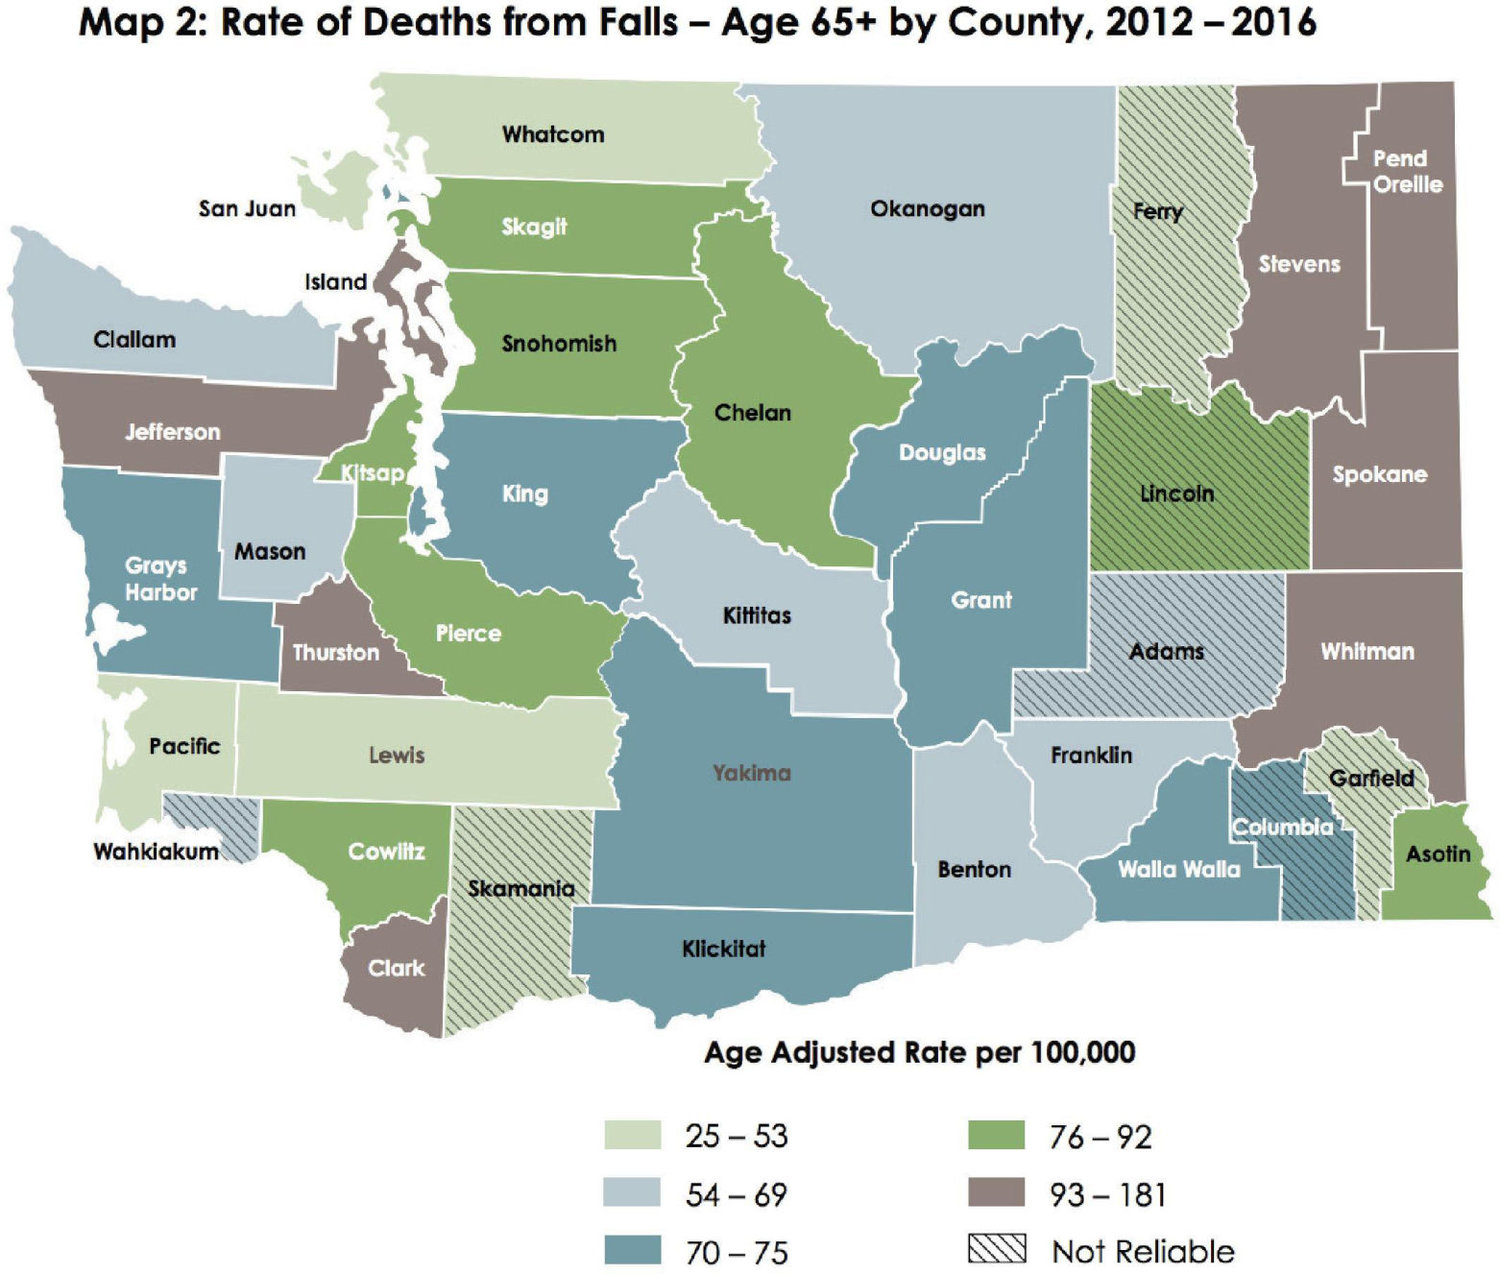 From 2012 to 2016, in the larger counties, Spone County had the highest fall death rate, followed by Clark and Thurston. Among the smaller counties, Whitman and Stevens counties appear to have elevated rates of fall-related deaths.